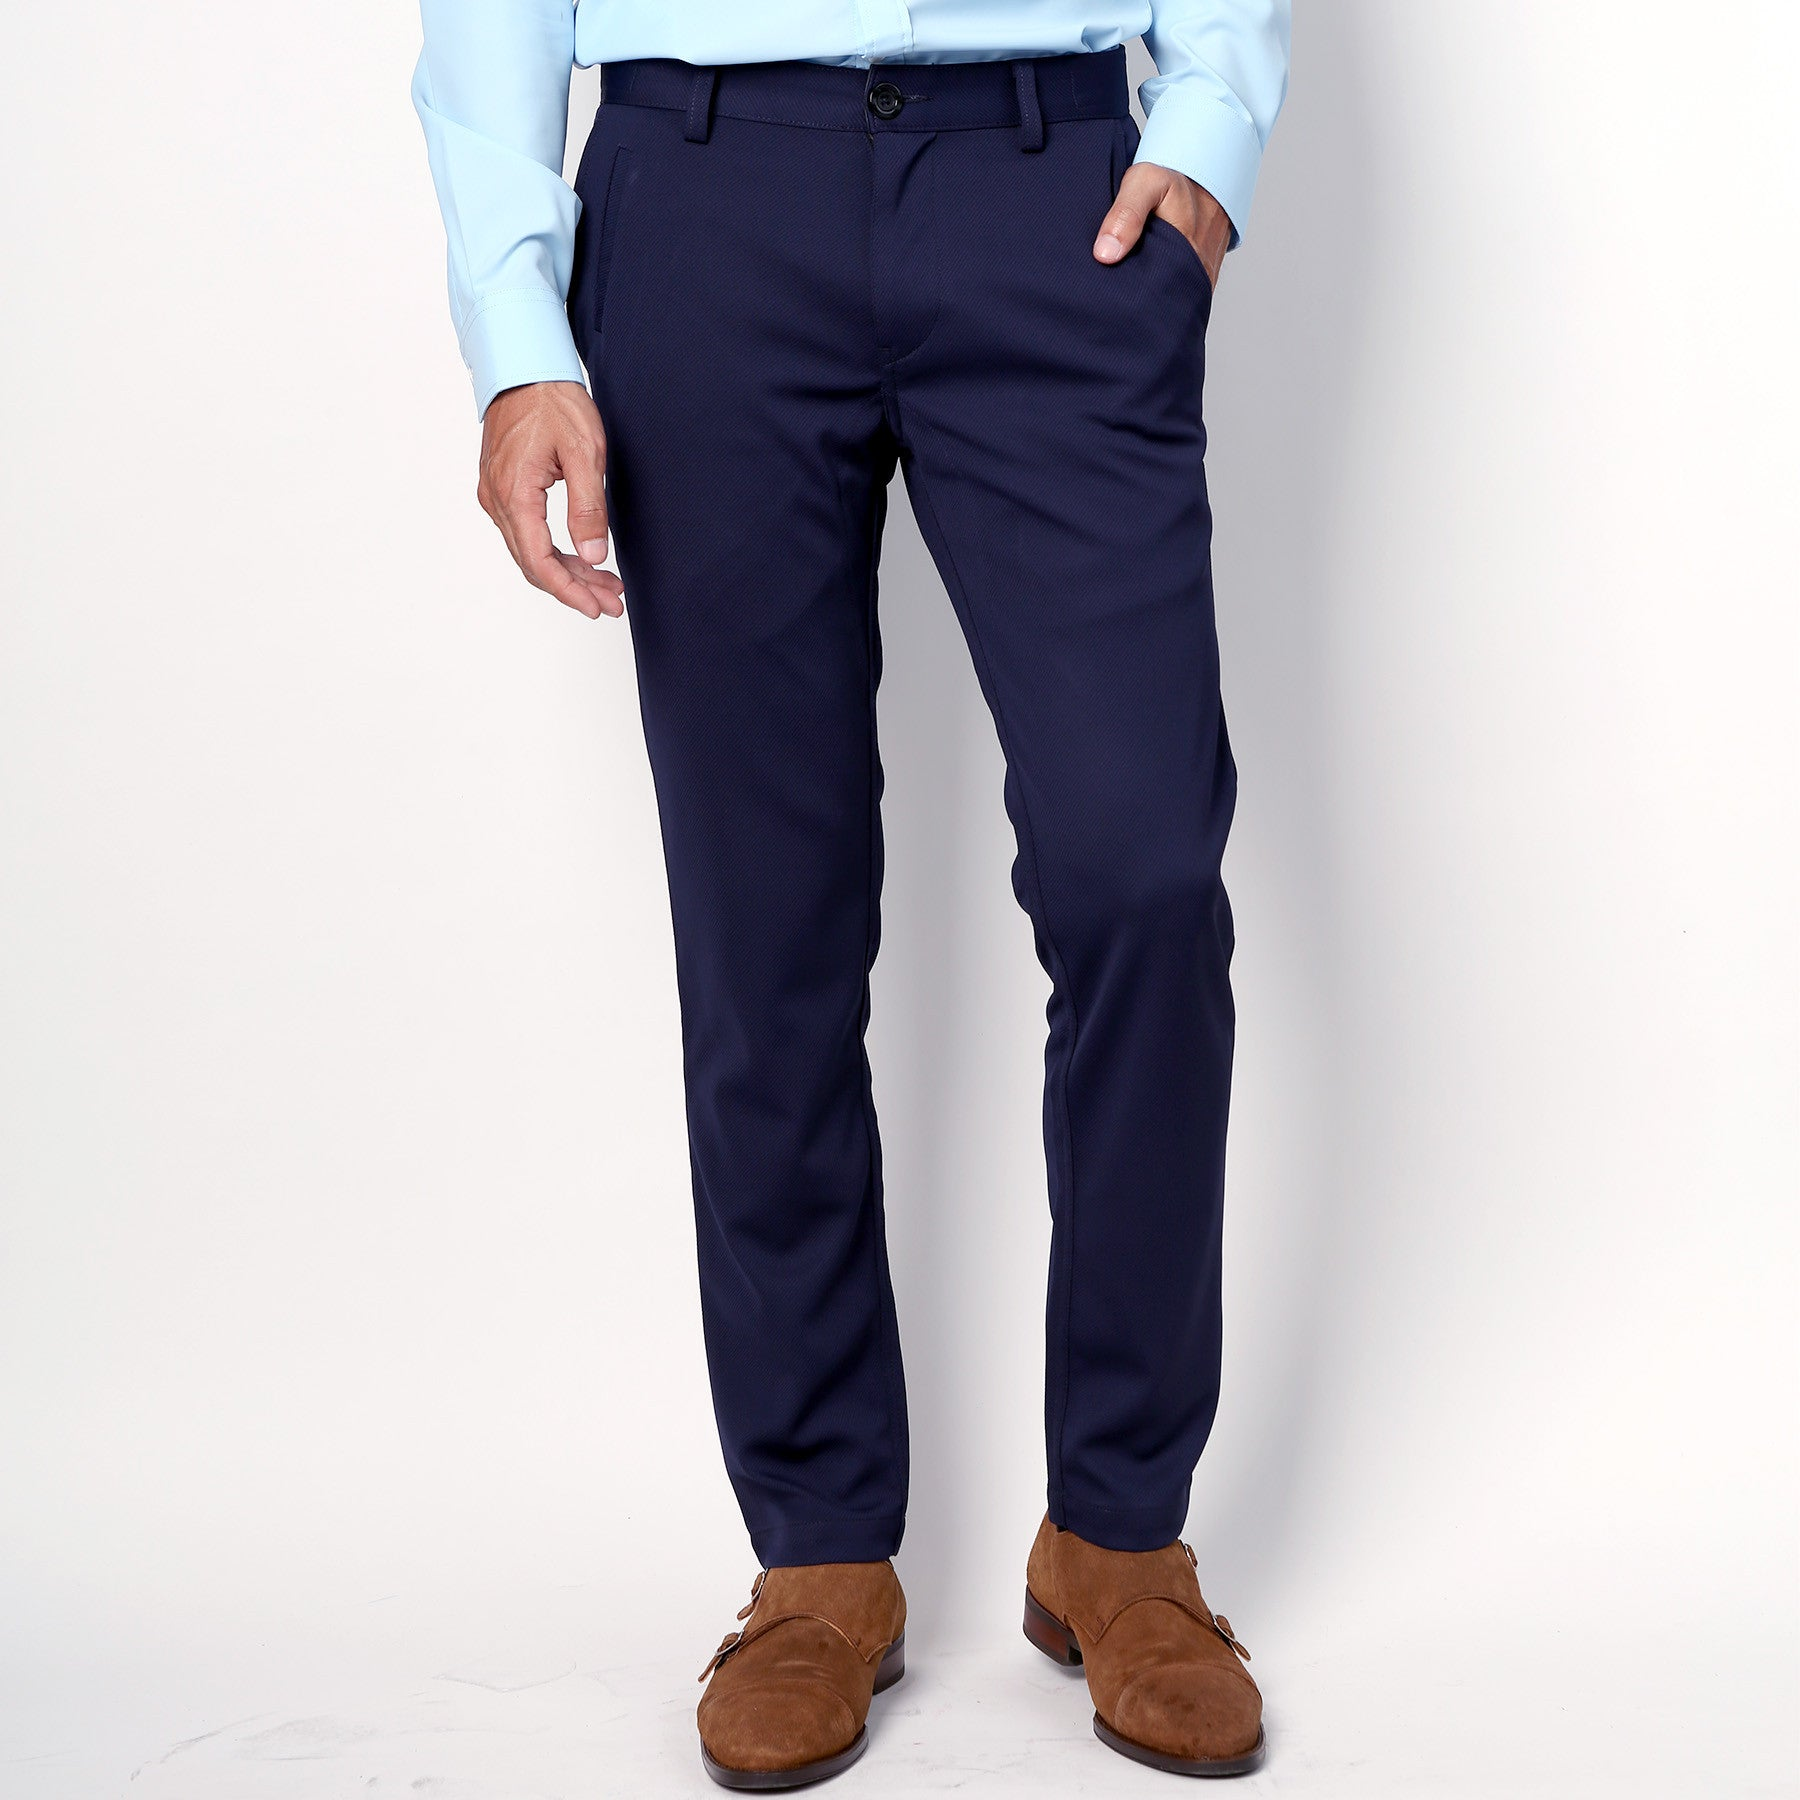 Active Trousers - Navy - Friday People - 1